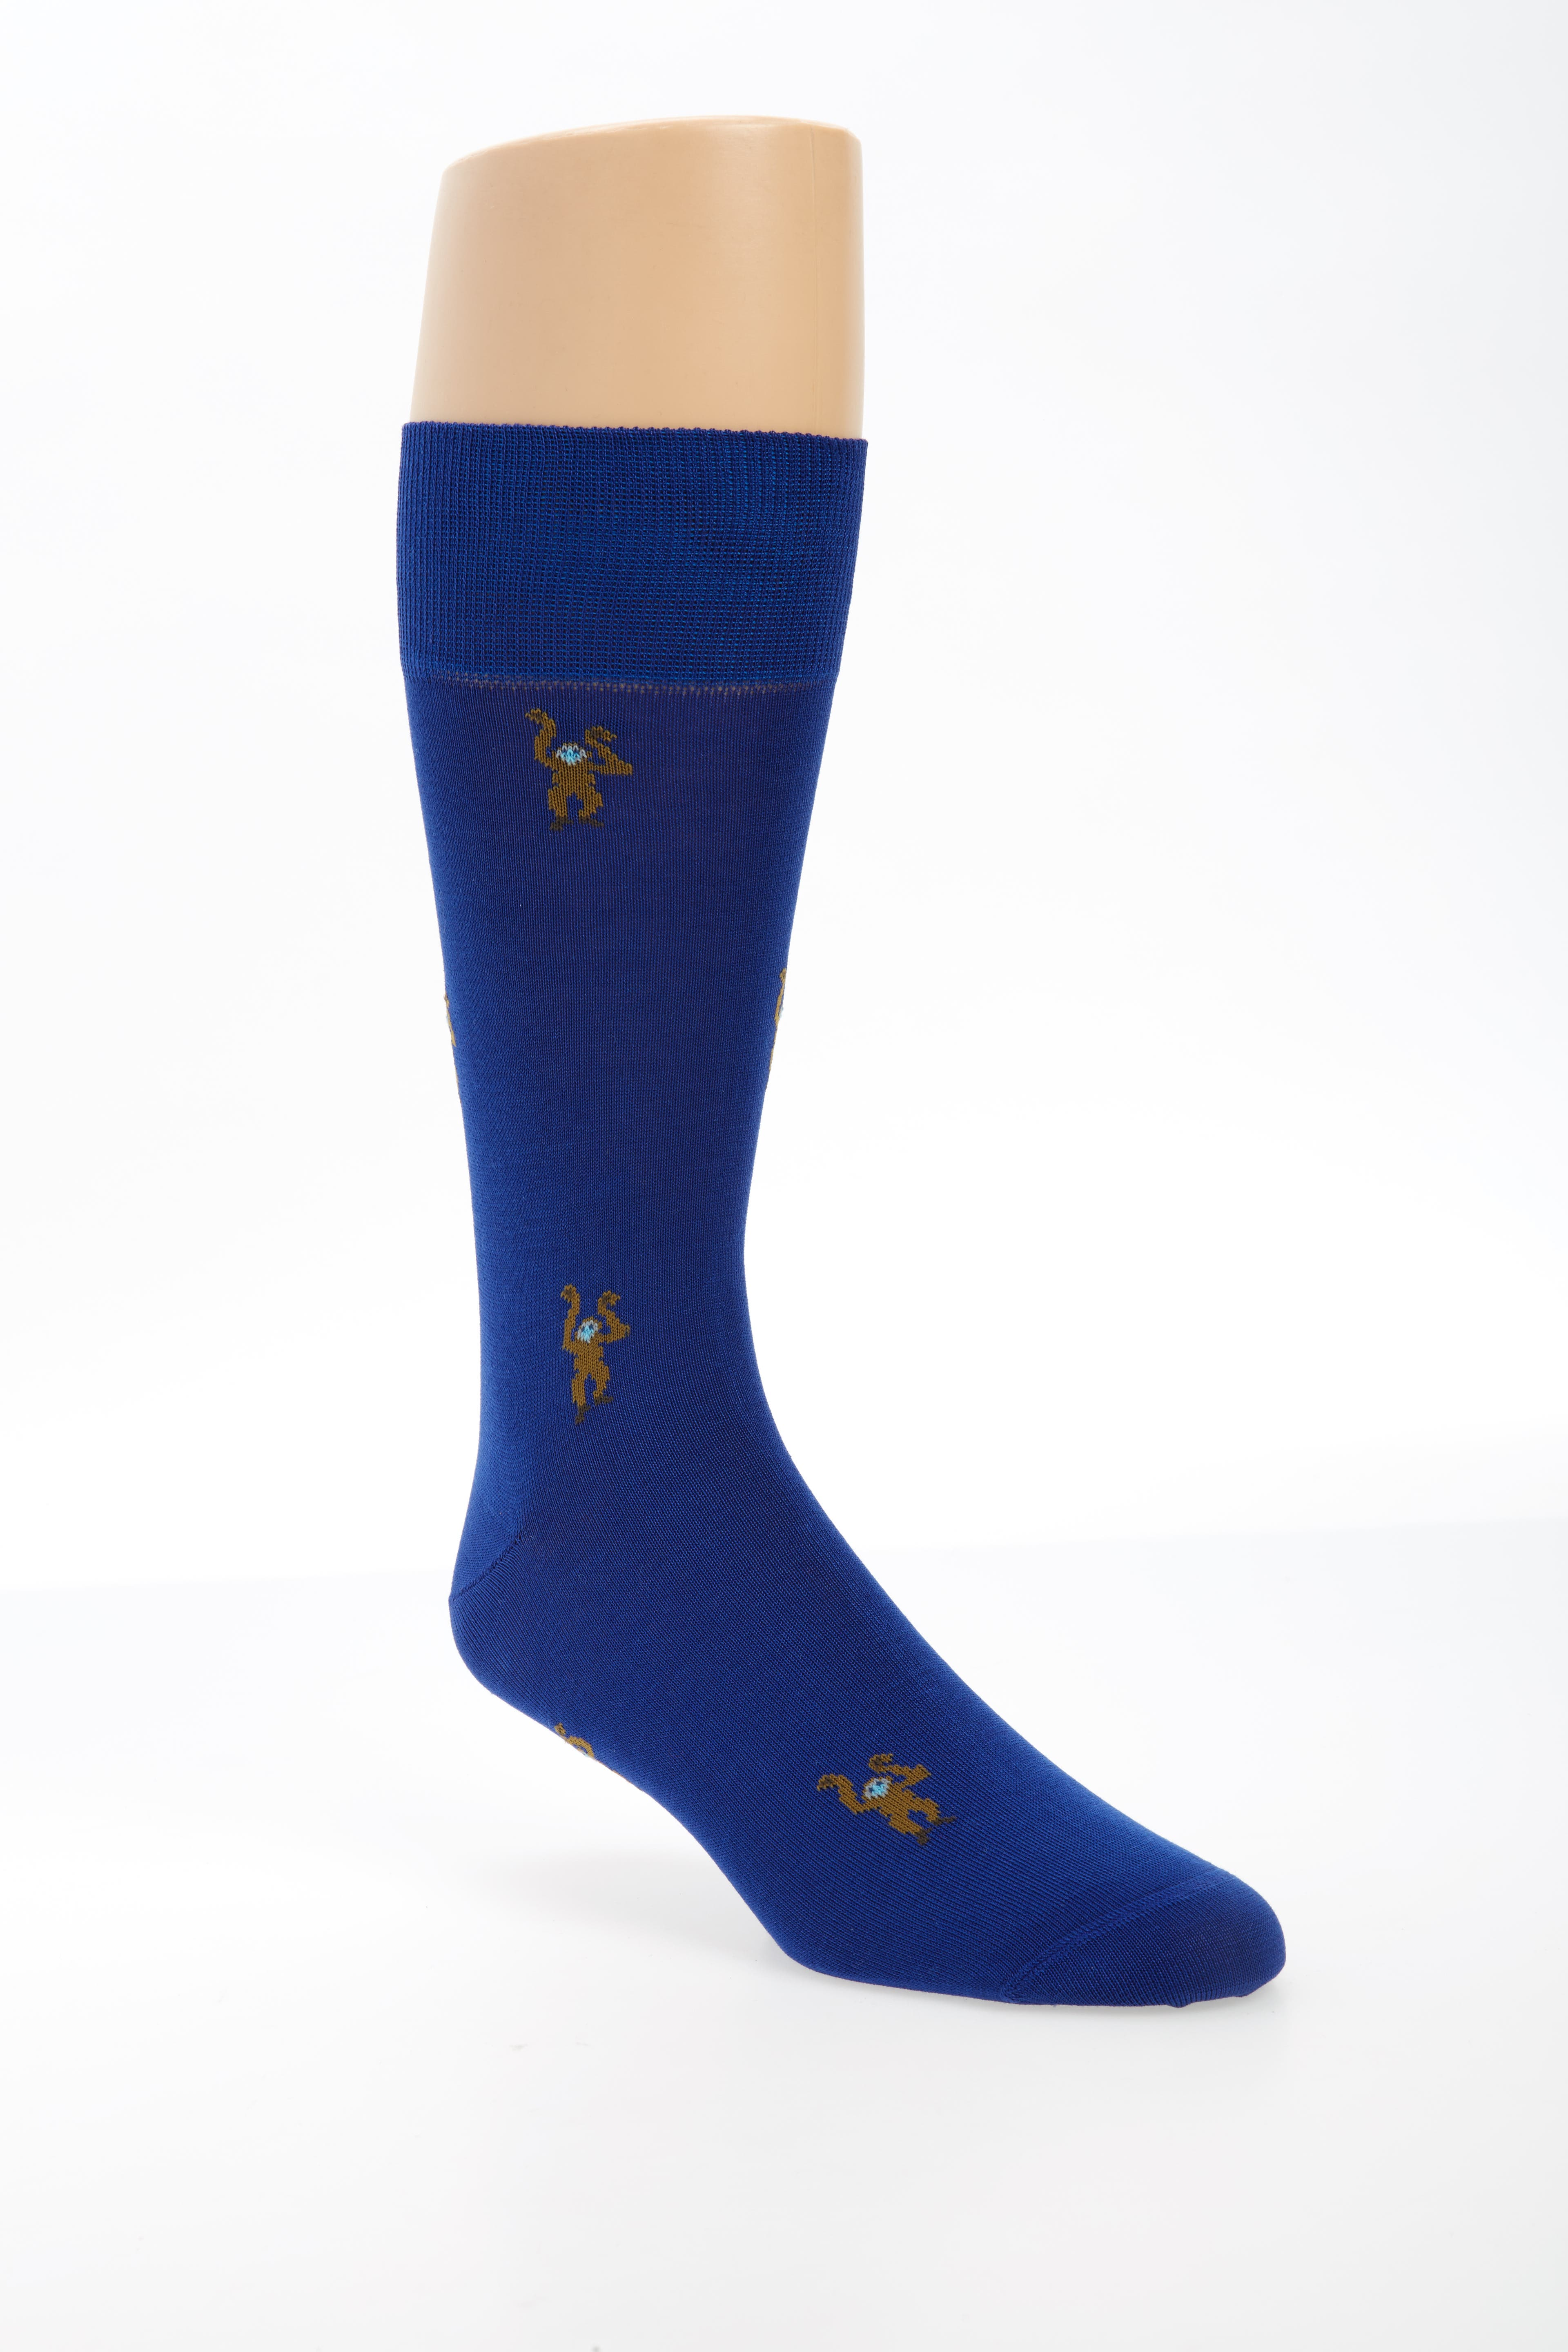 Paul Smith Monkey Socks